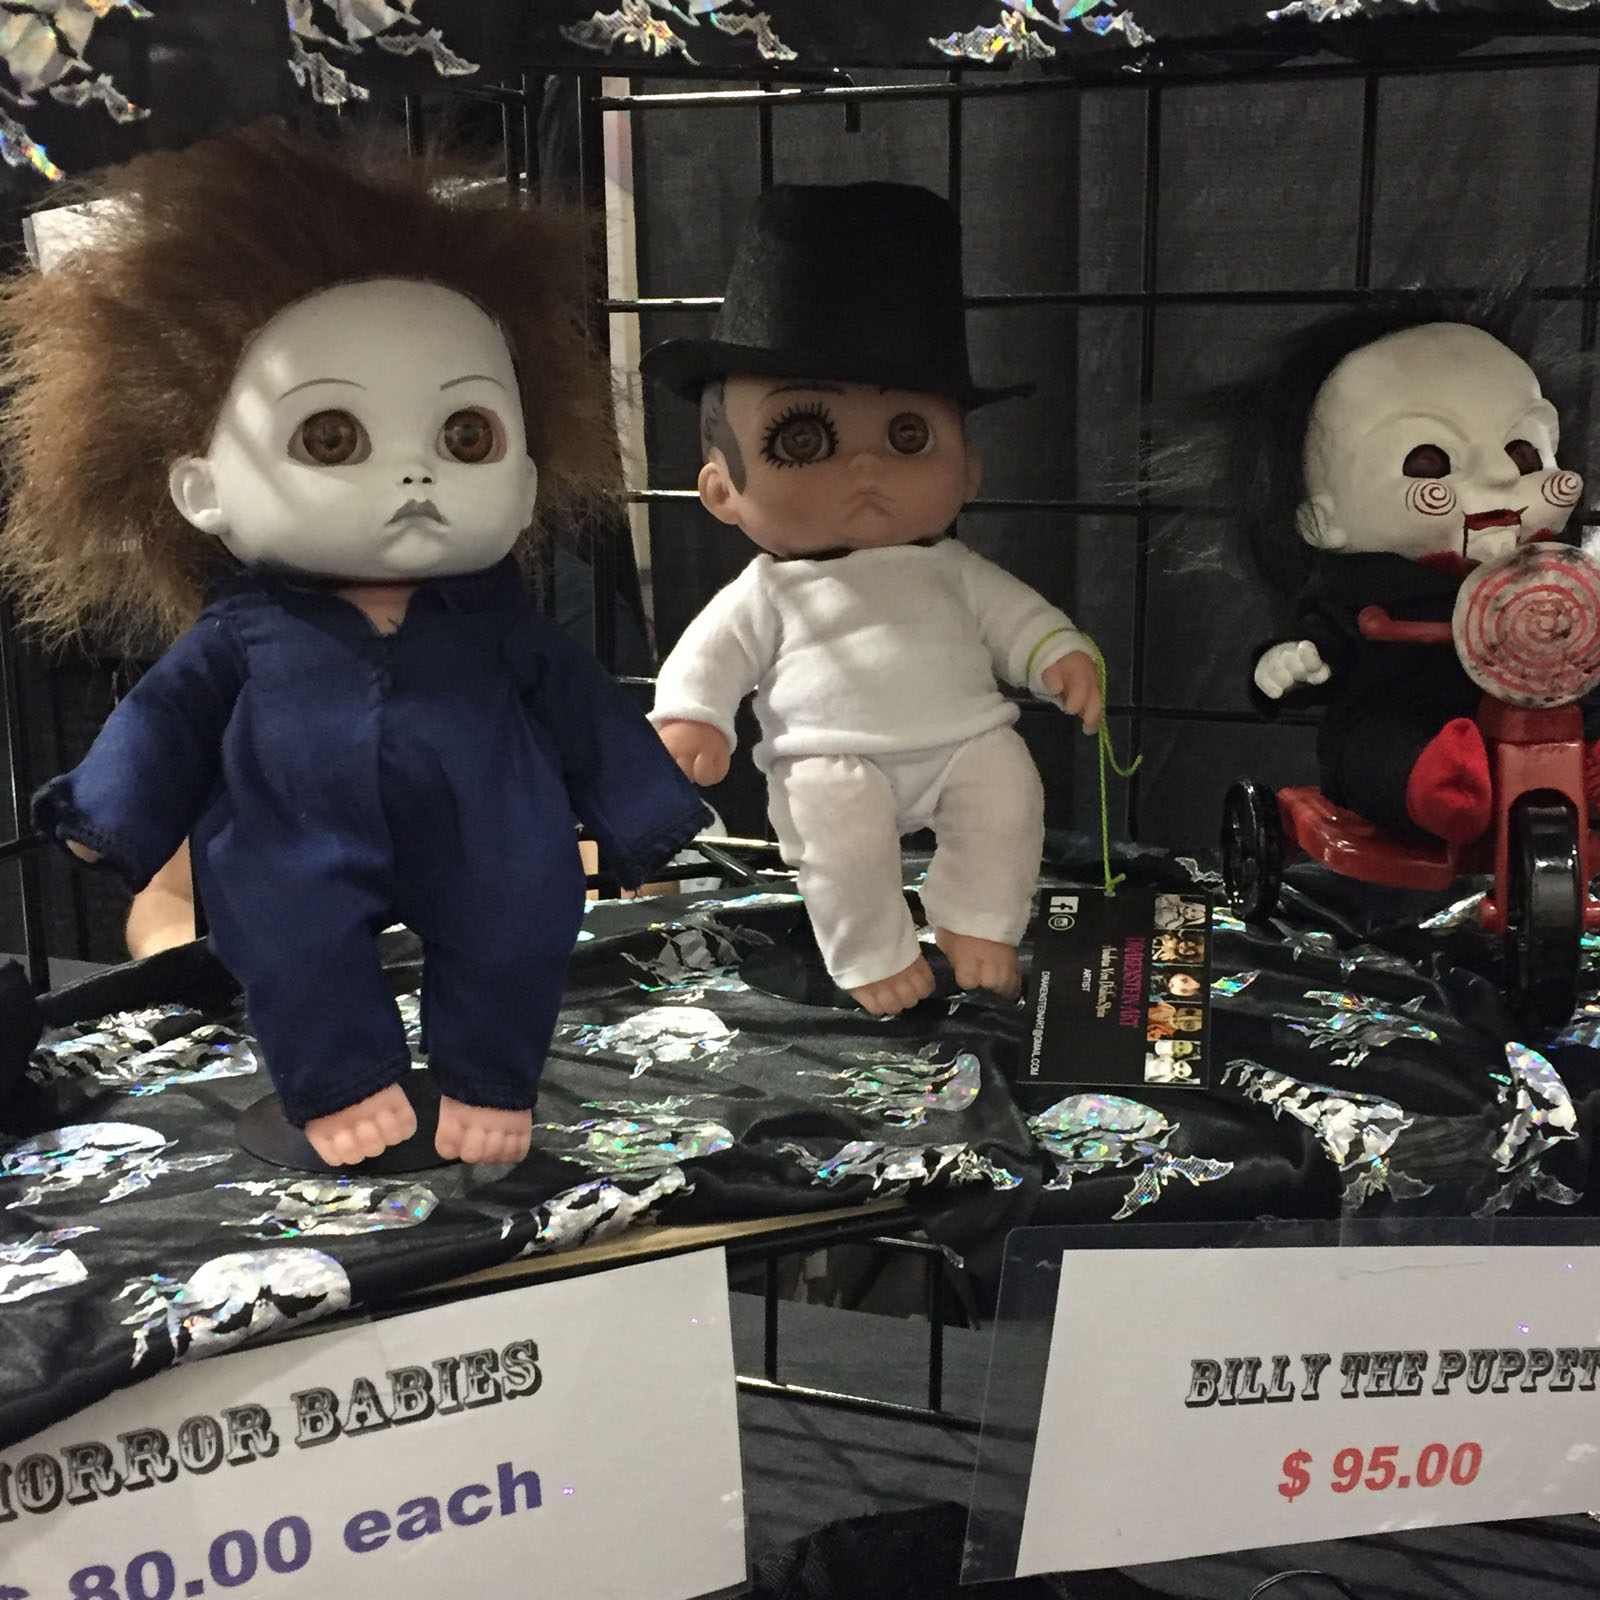 These dolls were just the cutest. Far too expensive, though.